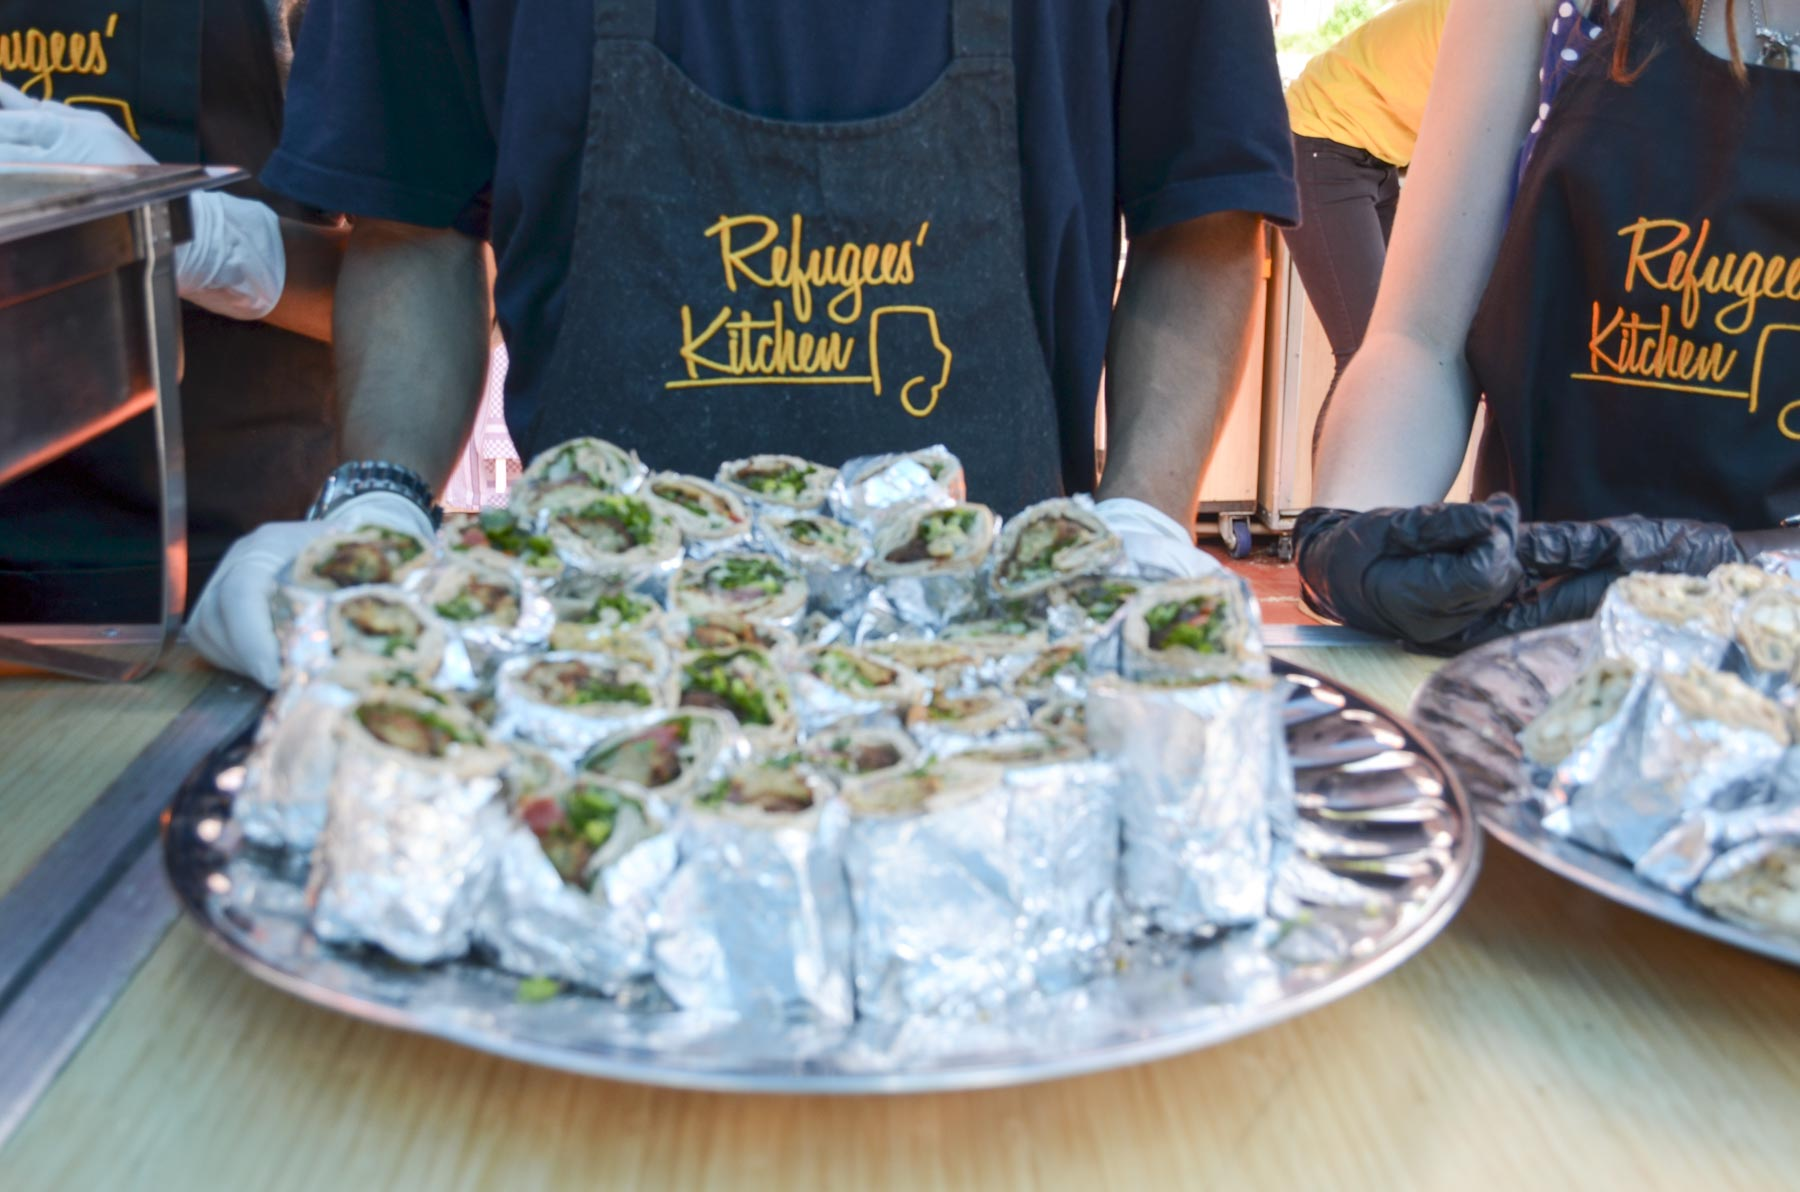 Refugees`Kitchen Falafel Shawarma